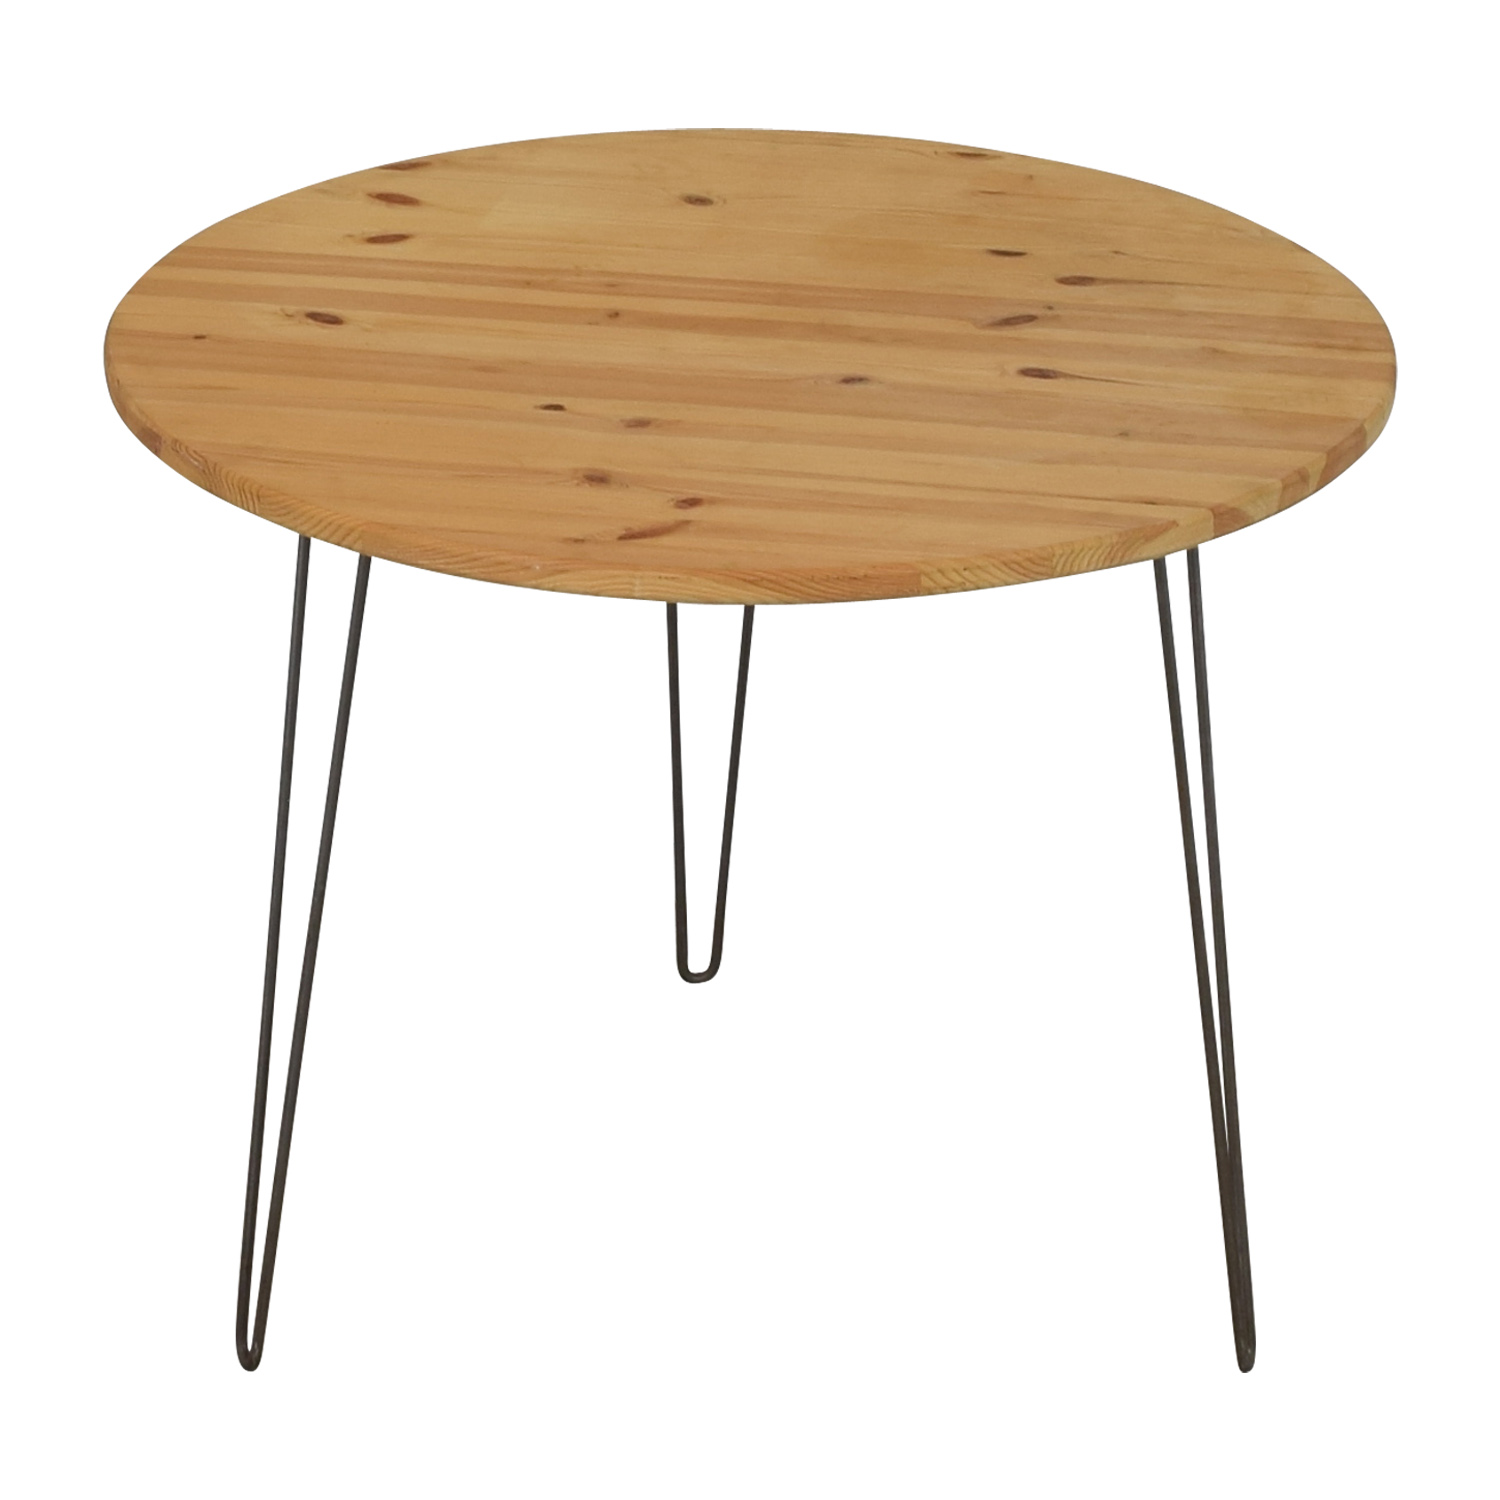 Round Custom Dining Table for sale